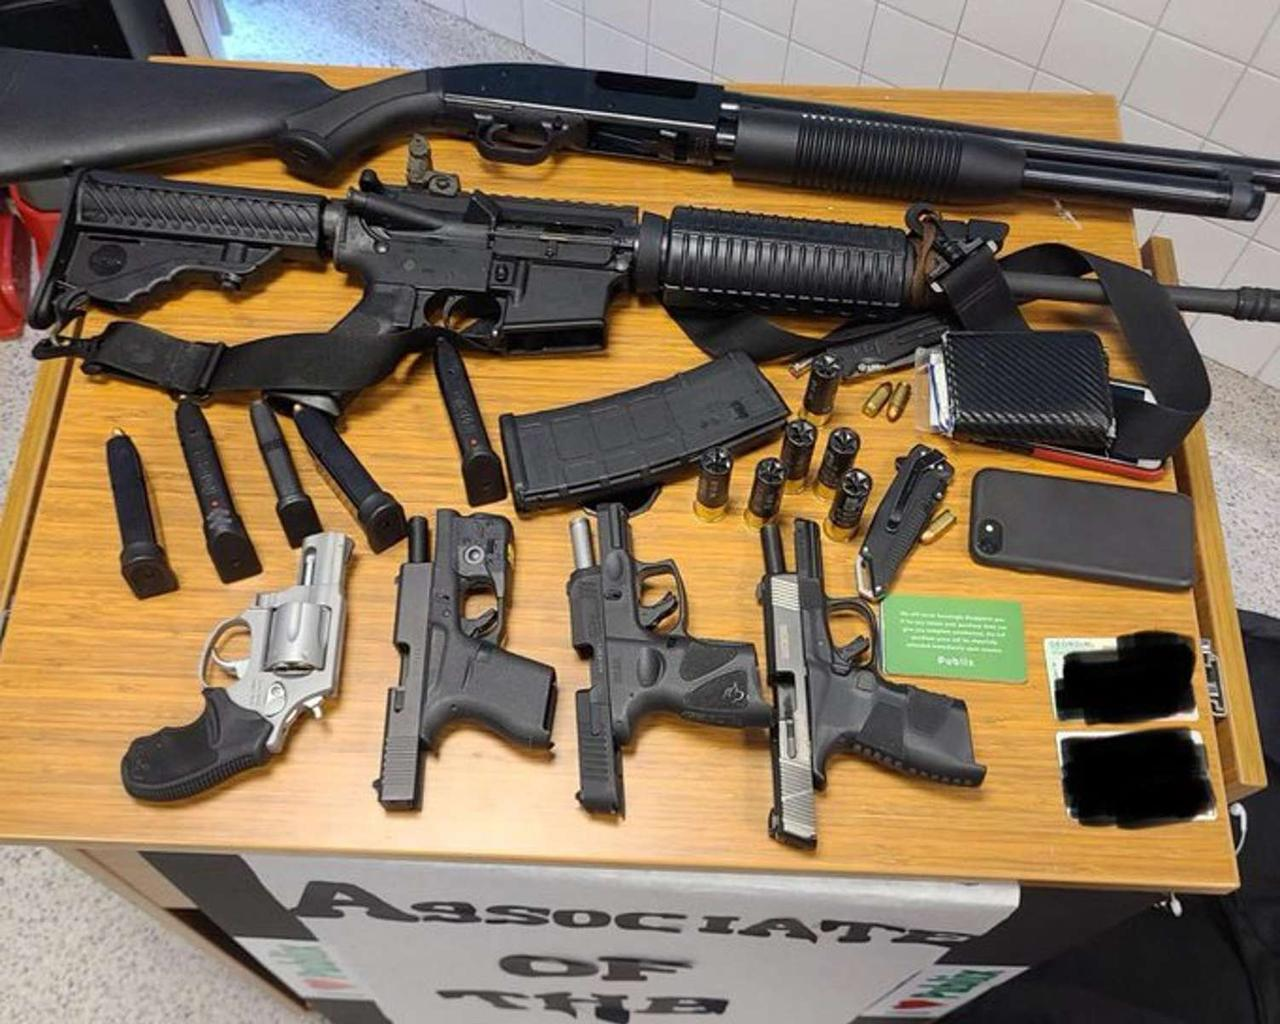 A man was arrested at an Atlanta store with six firearms, body armor, police said